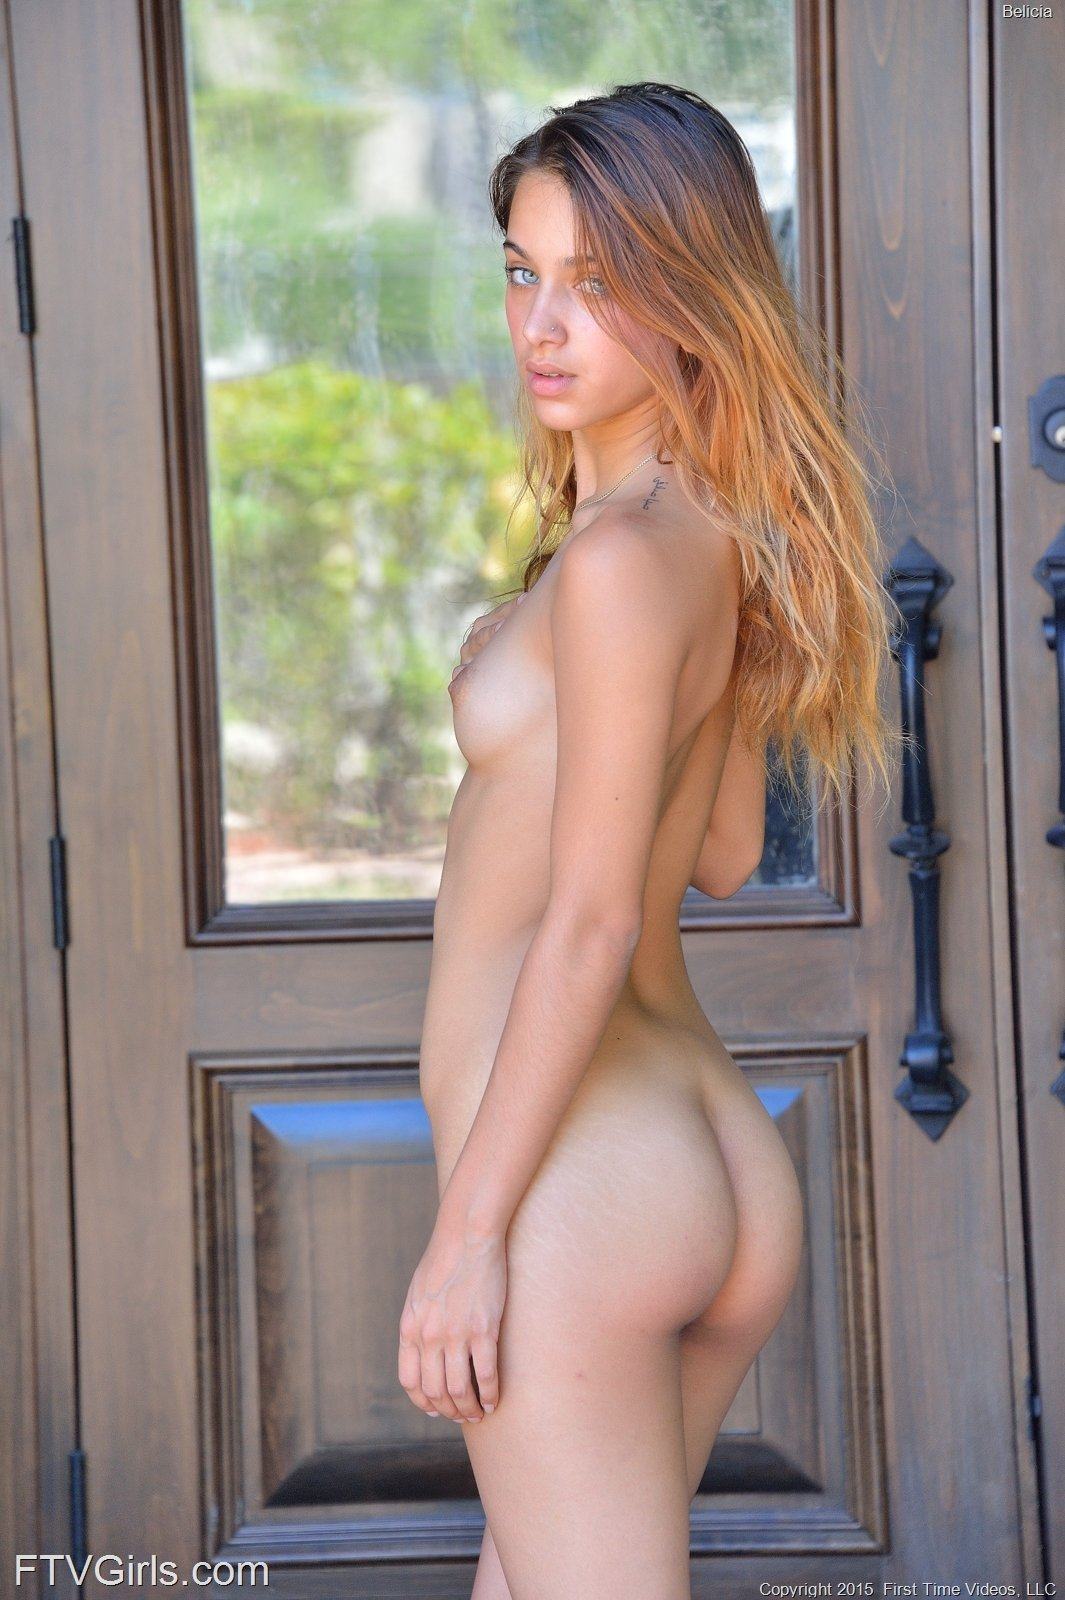 Ftv Girl Belicia In First Time Nudes 16 Photos  Video -3729